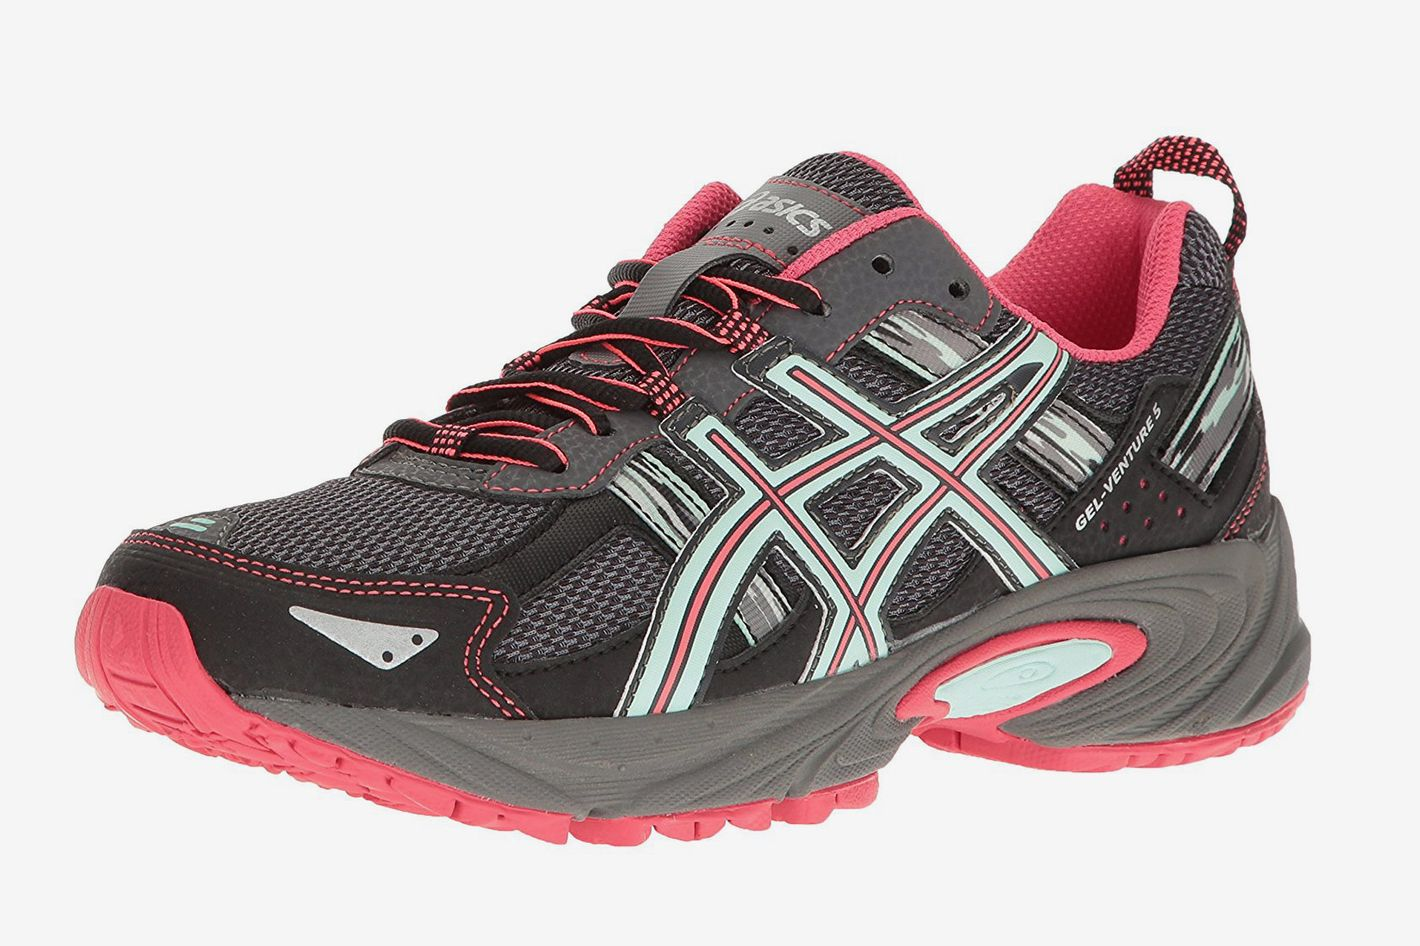 53b264081426 ASICS Women s GEL-Venture 5 Running Shoe at Amazon. Buy